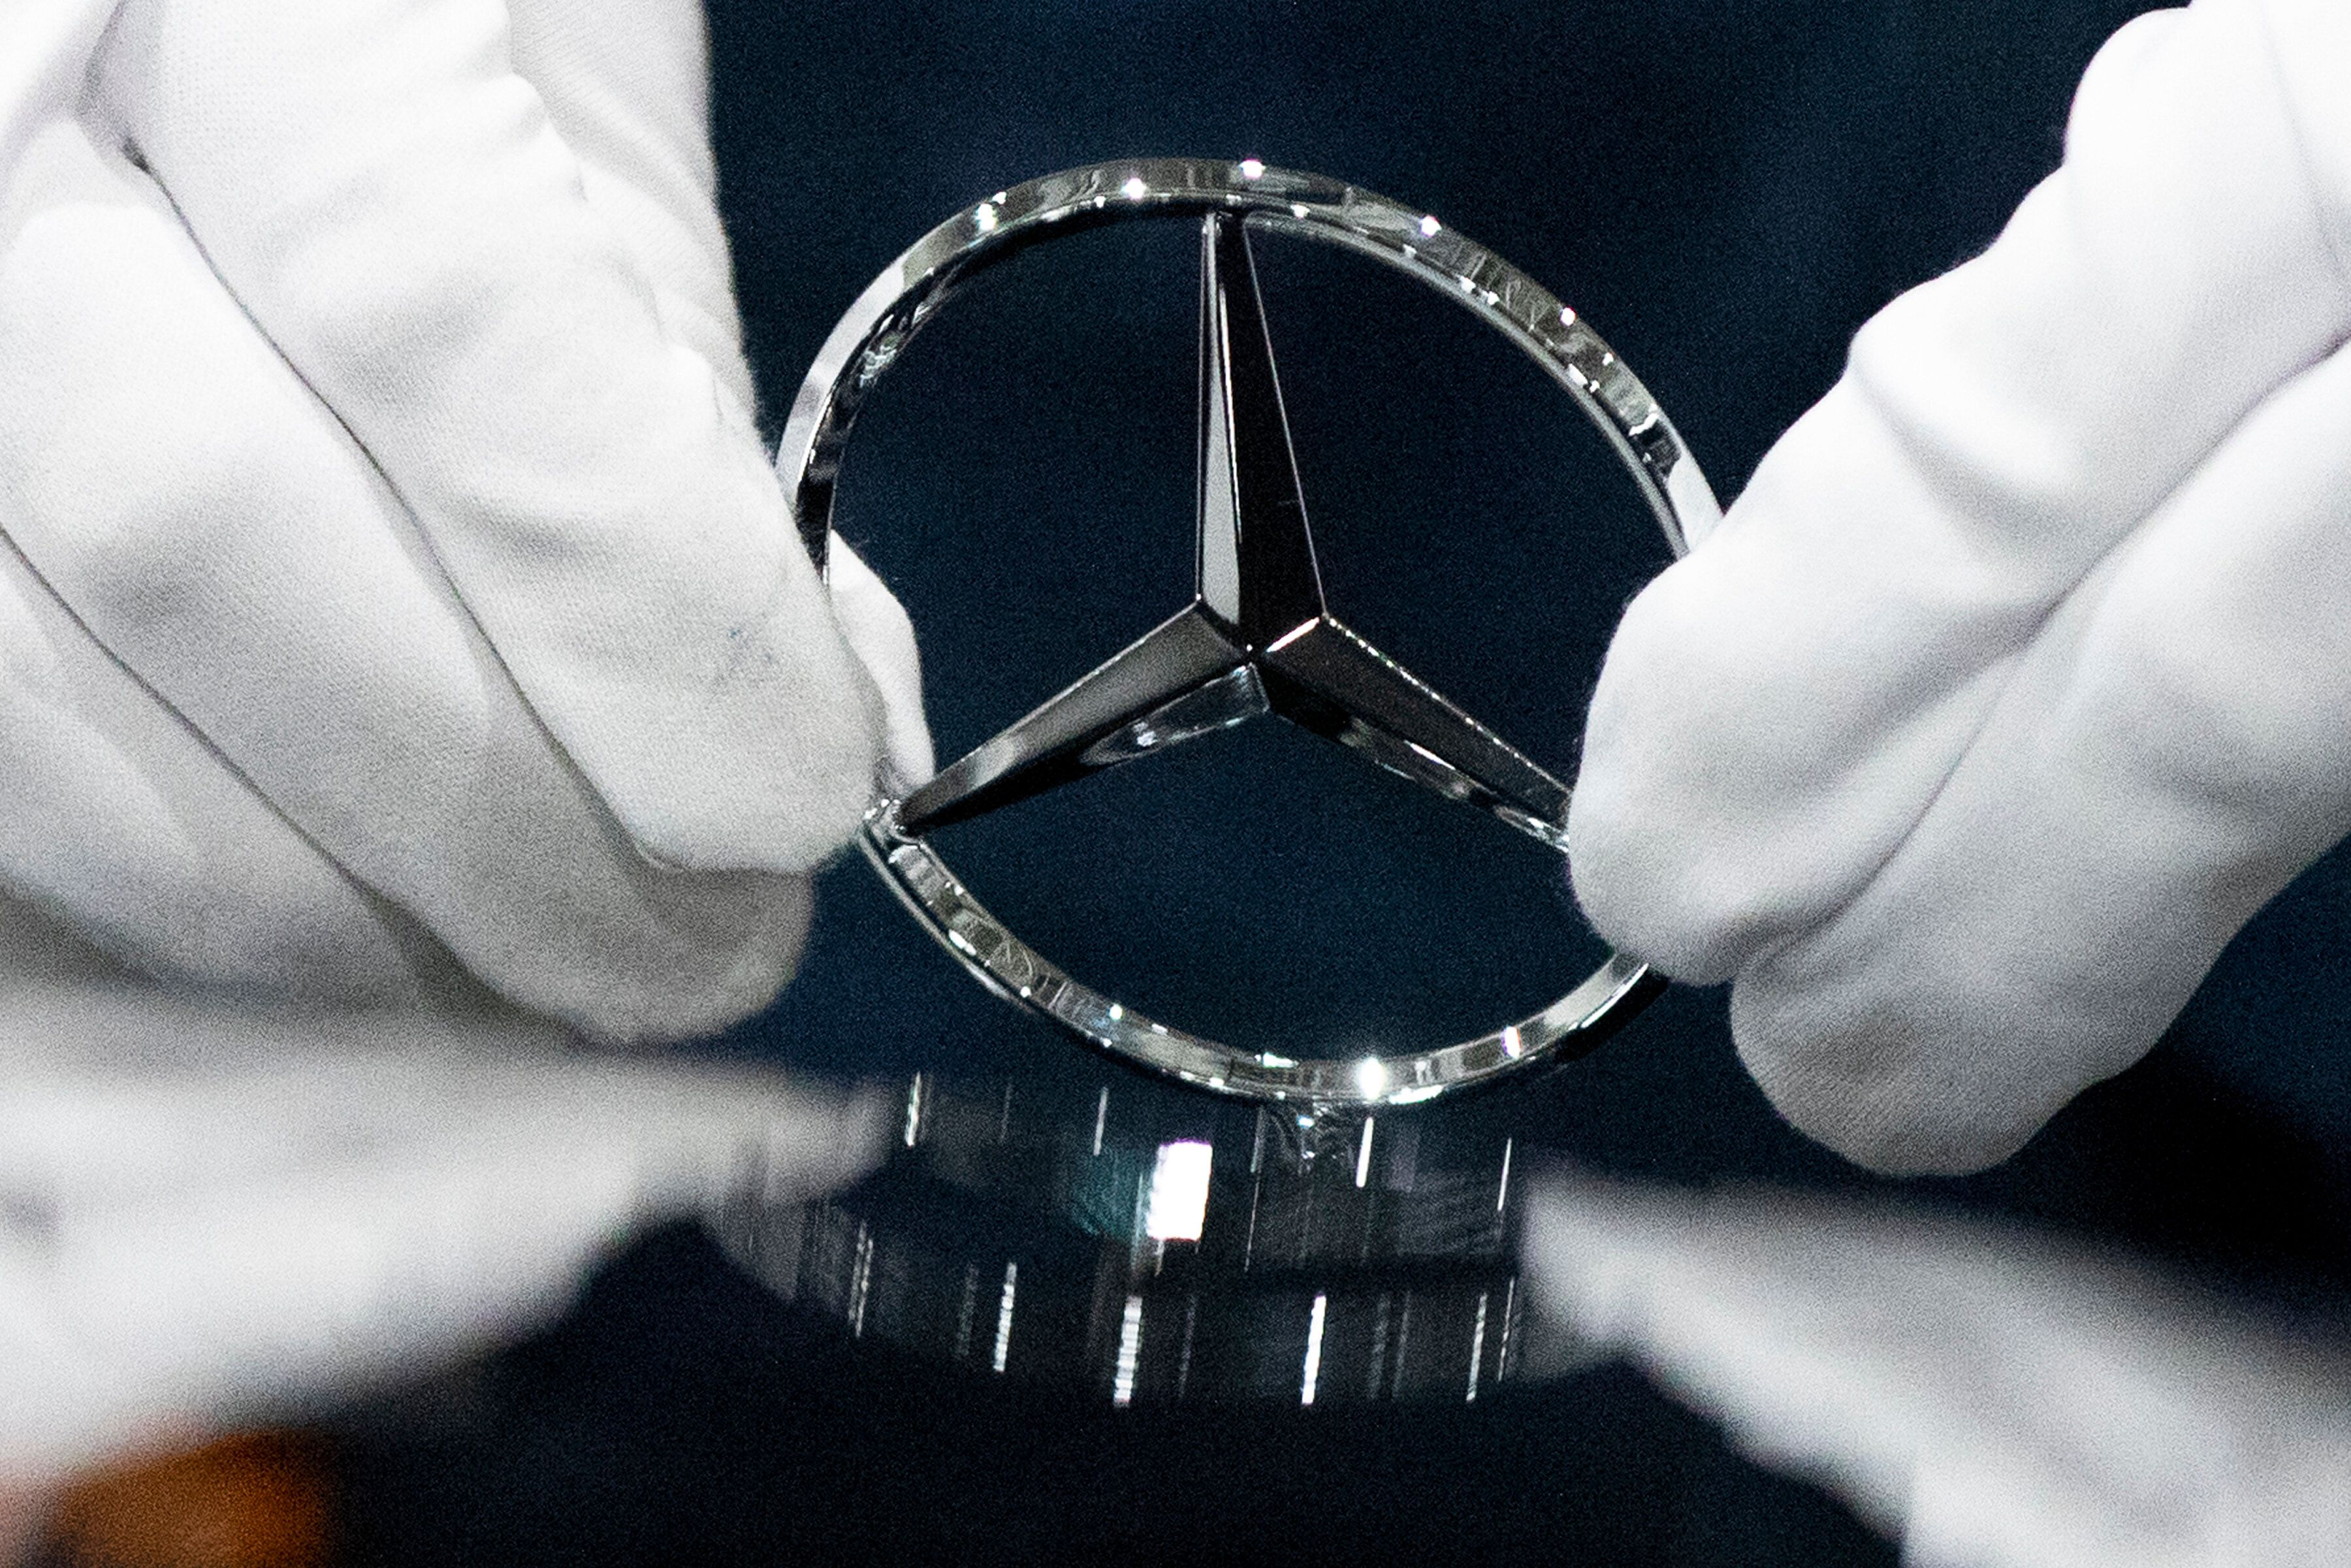 A worker wipes a logo of a car at the Mercedes Benz automobile assembly plant outside Moscow, Russia, Wednesday, April 3, 2019. Germany's Daimler AG has opened a new Mercedes factory in Russia, part of a 250 million euro ($281 million) investment it says will create 1,000 jobs. (AP Photo/Pavel Golovkin, Pool)